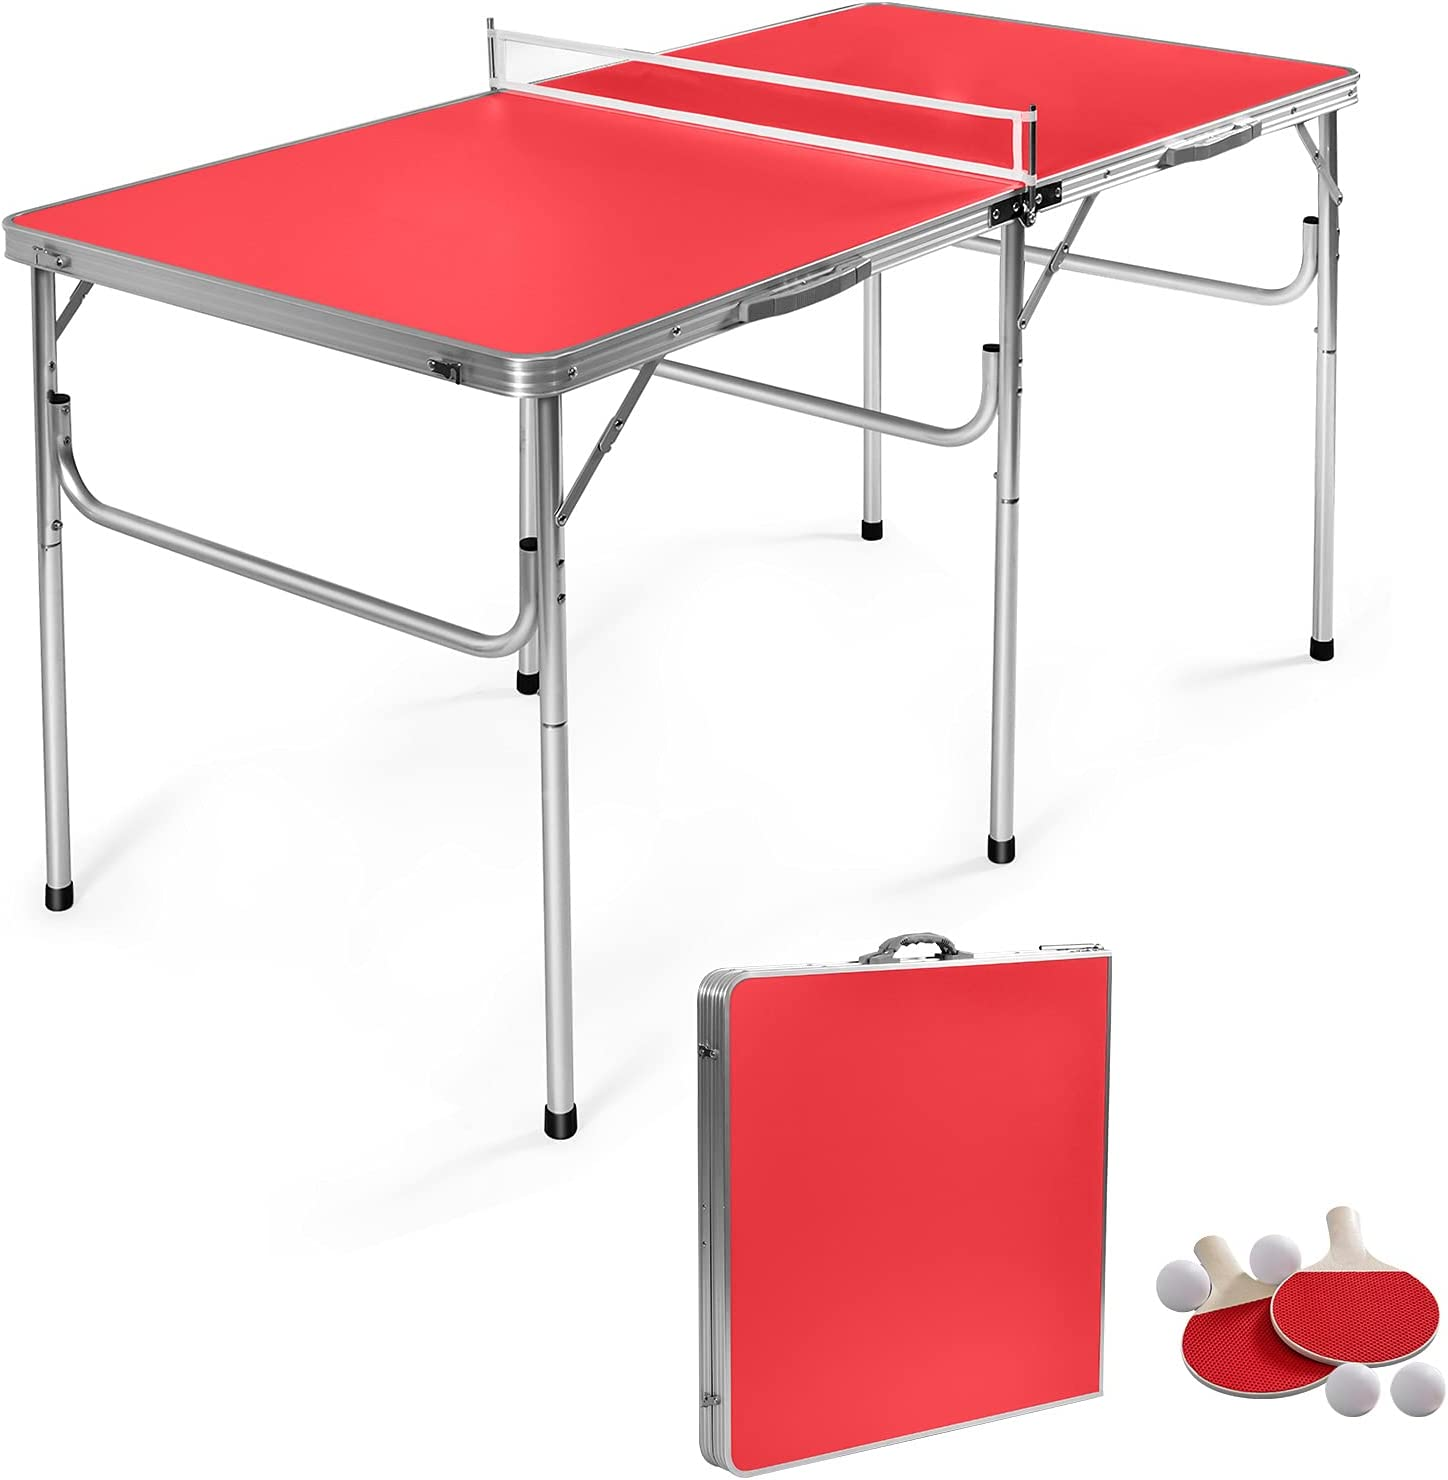 GYMAX Indoor Table Tennis Set Fresno Mall Pong Ping wit Brand new Folding